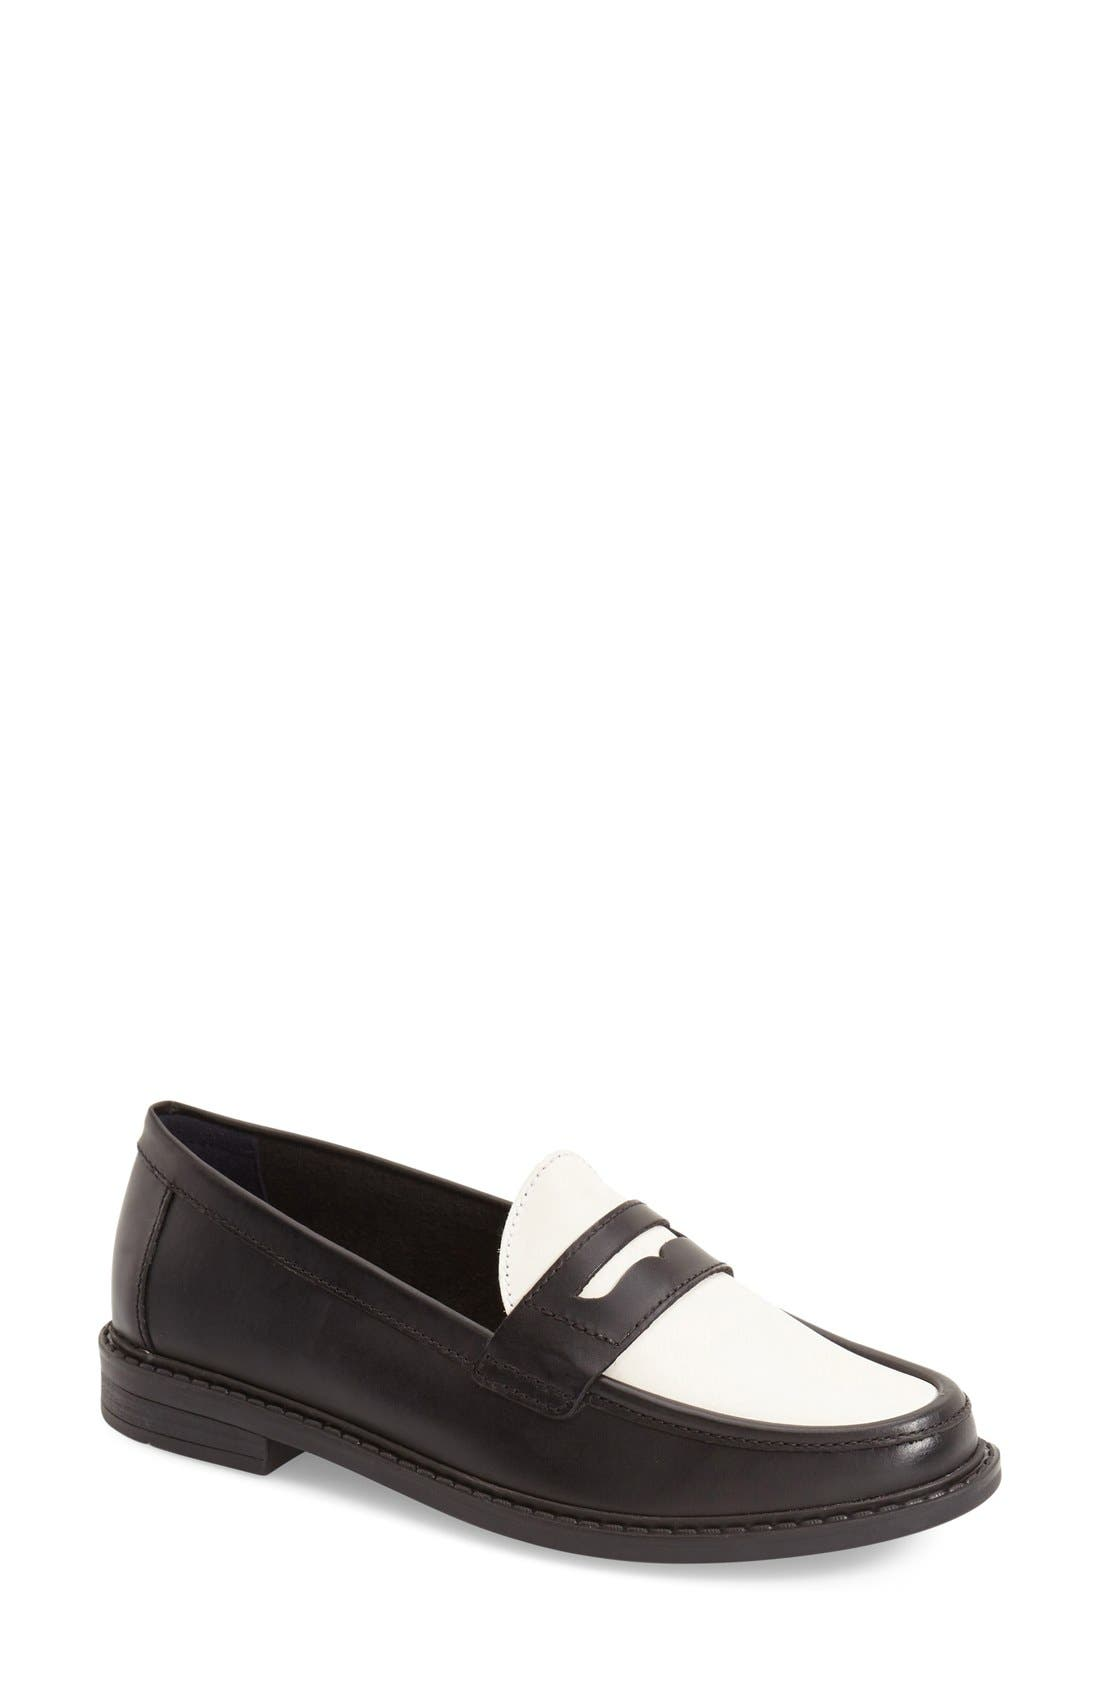 Cole Haan 'Pinch Campus' Penny Loafer